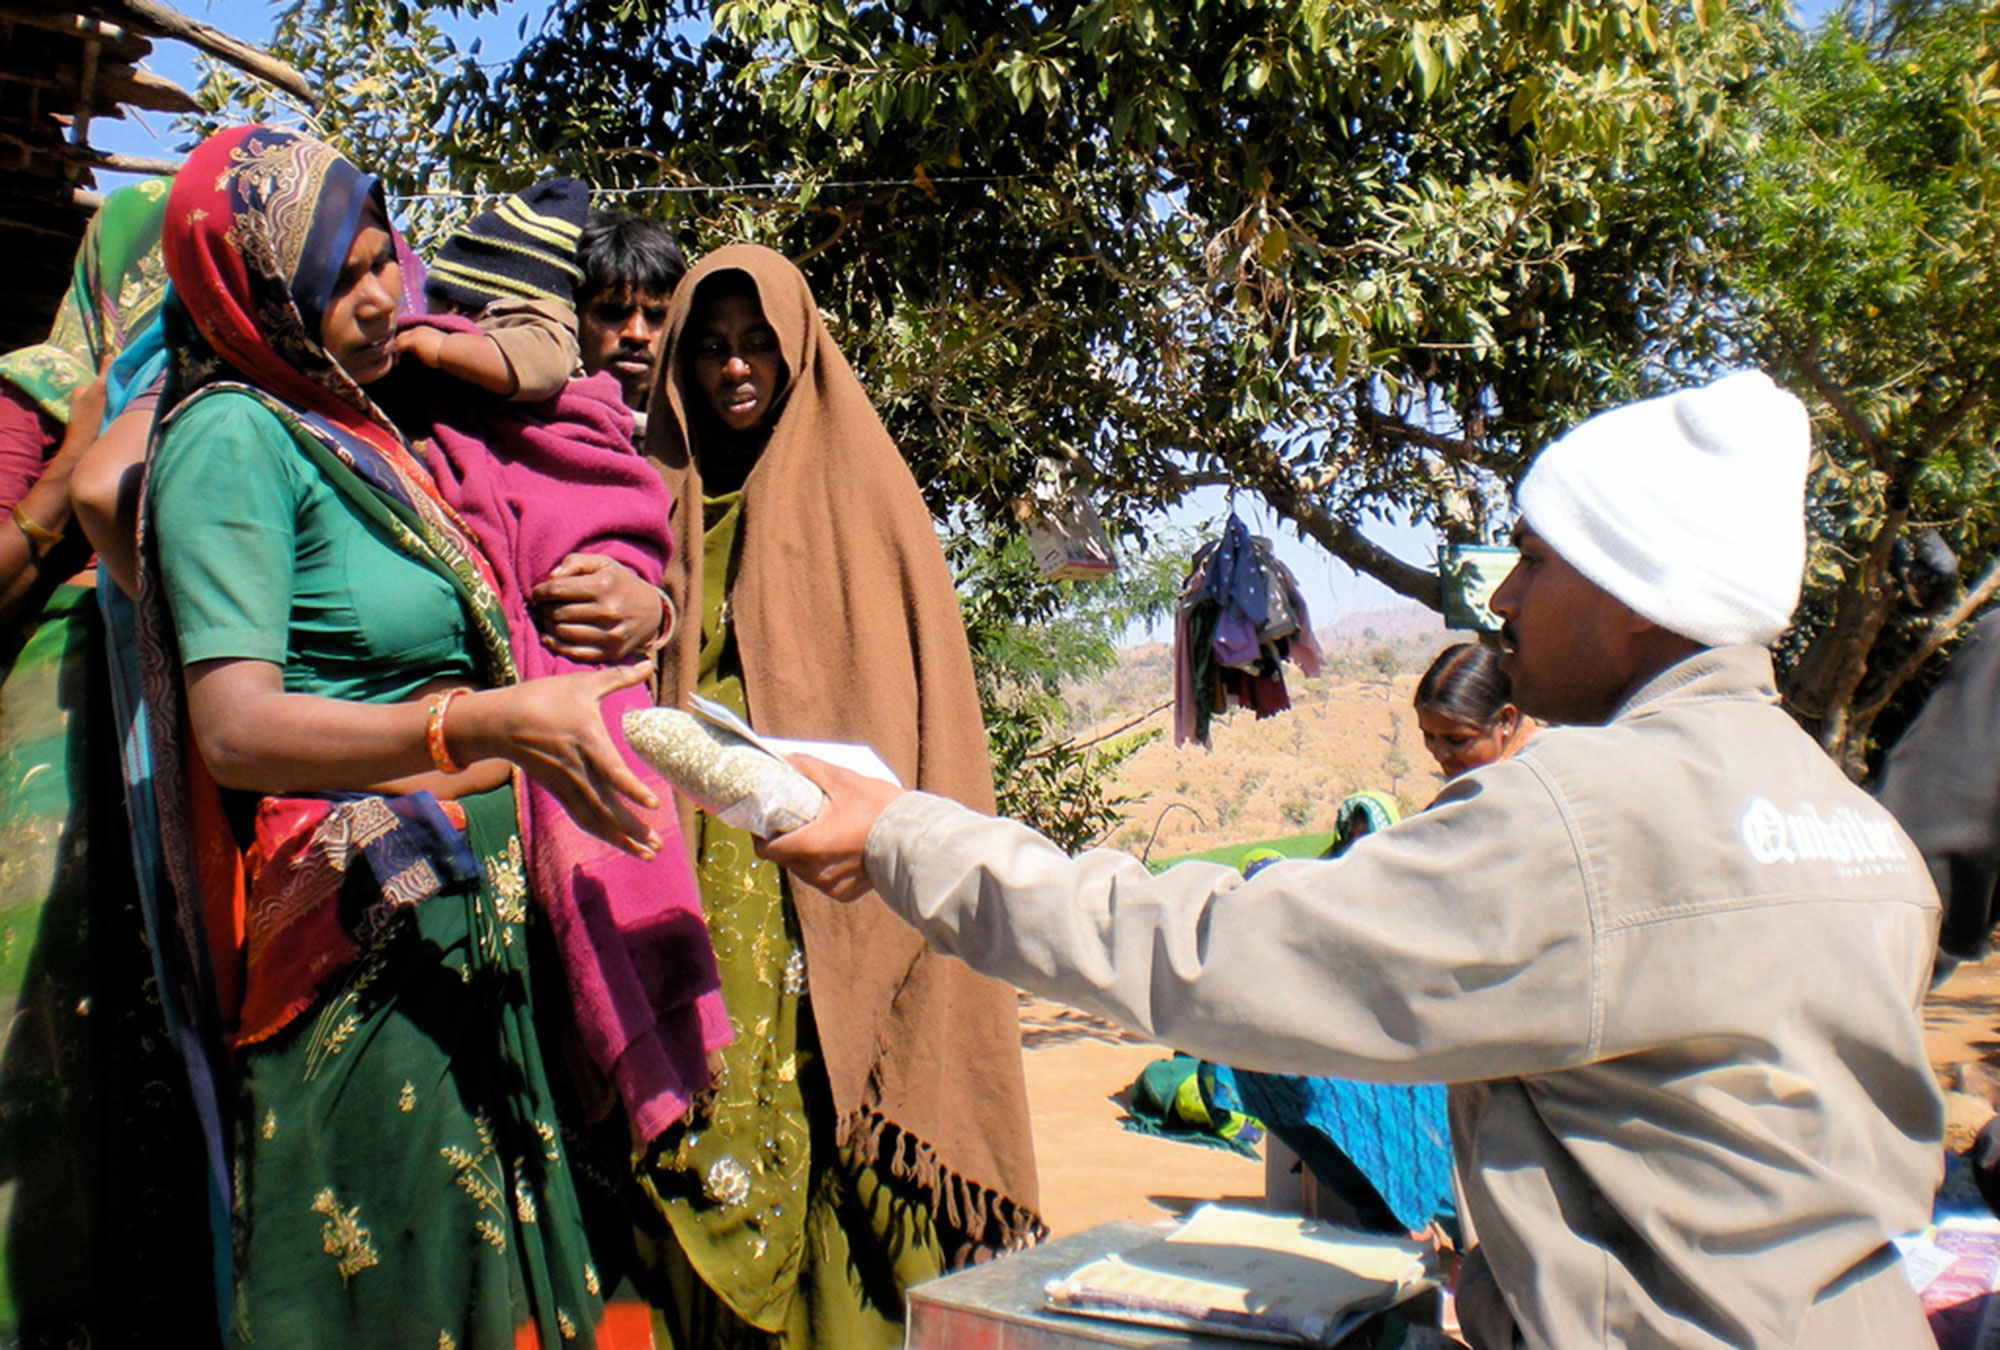 Woman receiving a kilogram of lentils as a reward for having her child vaccinated, Rajasthan, India.